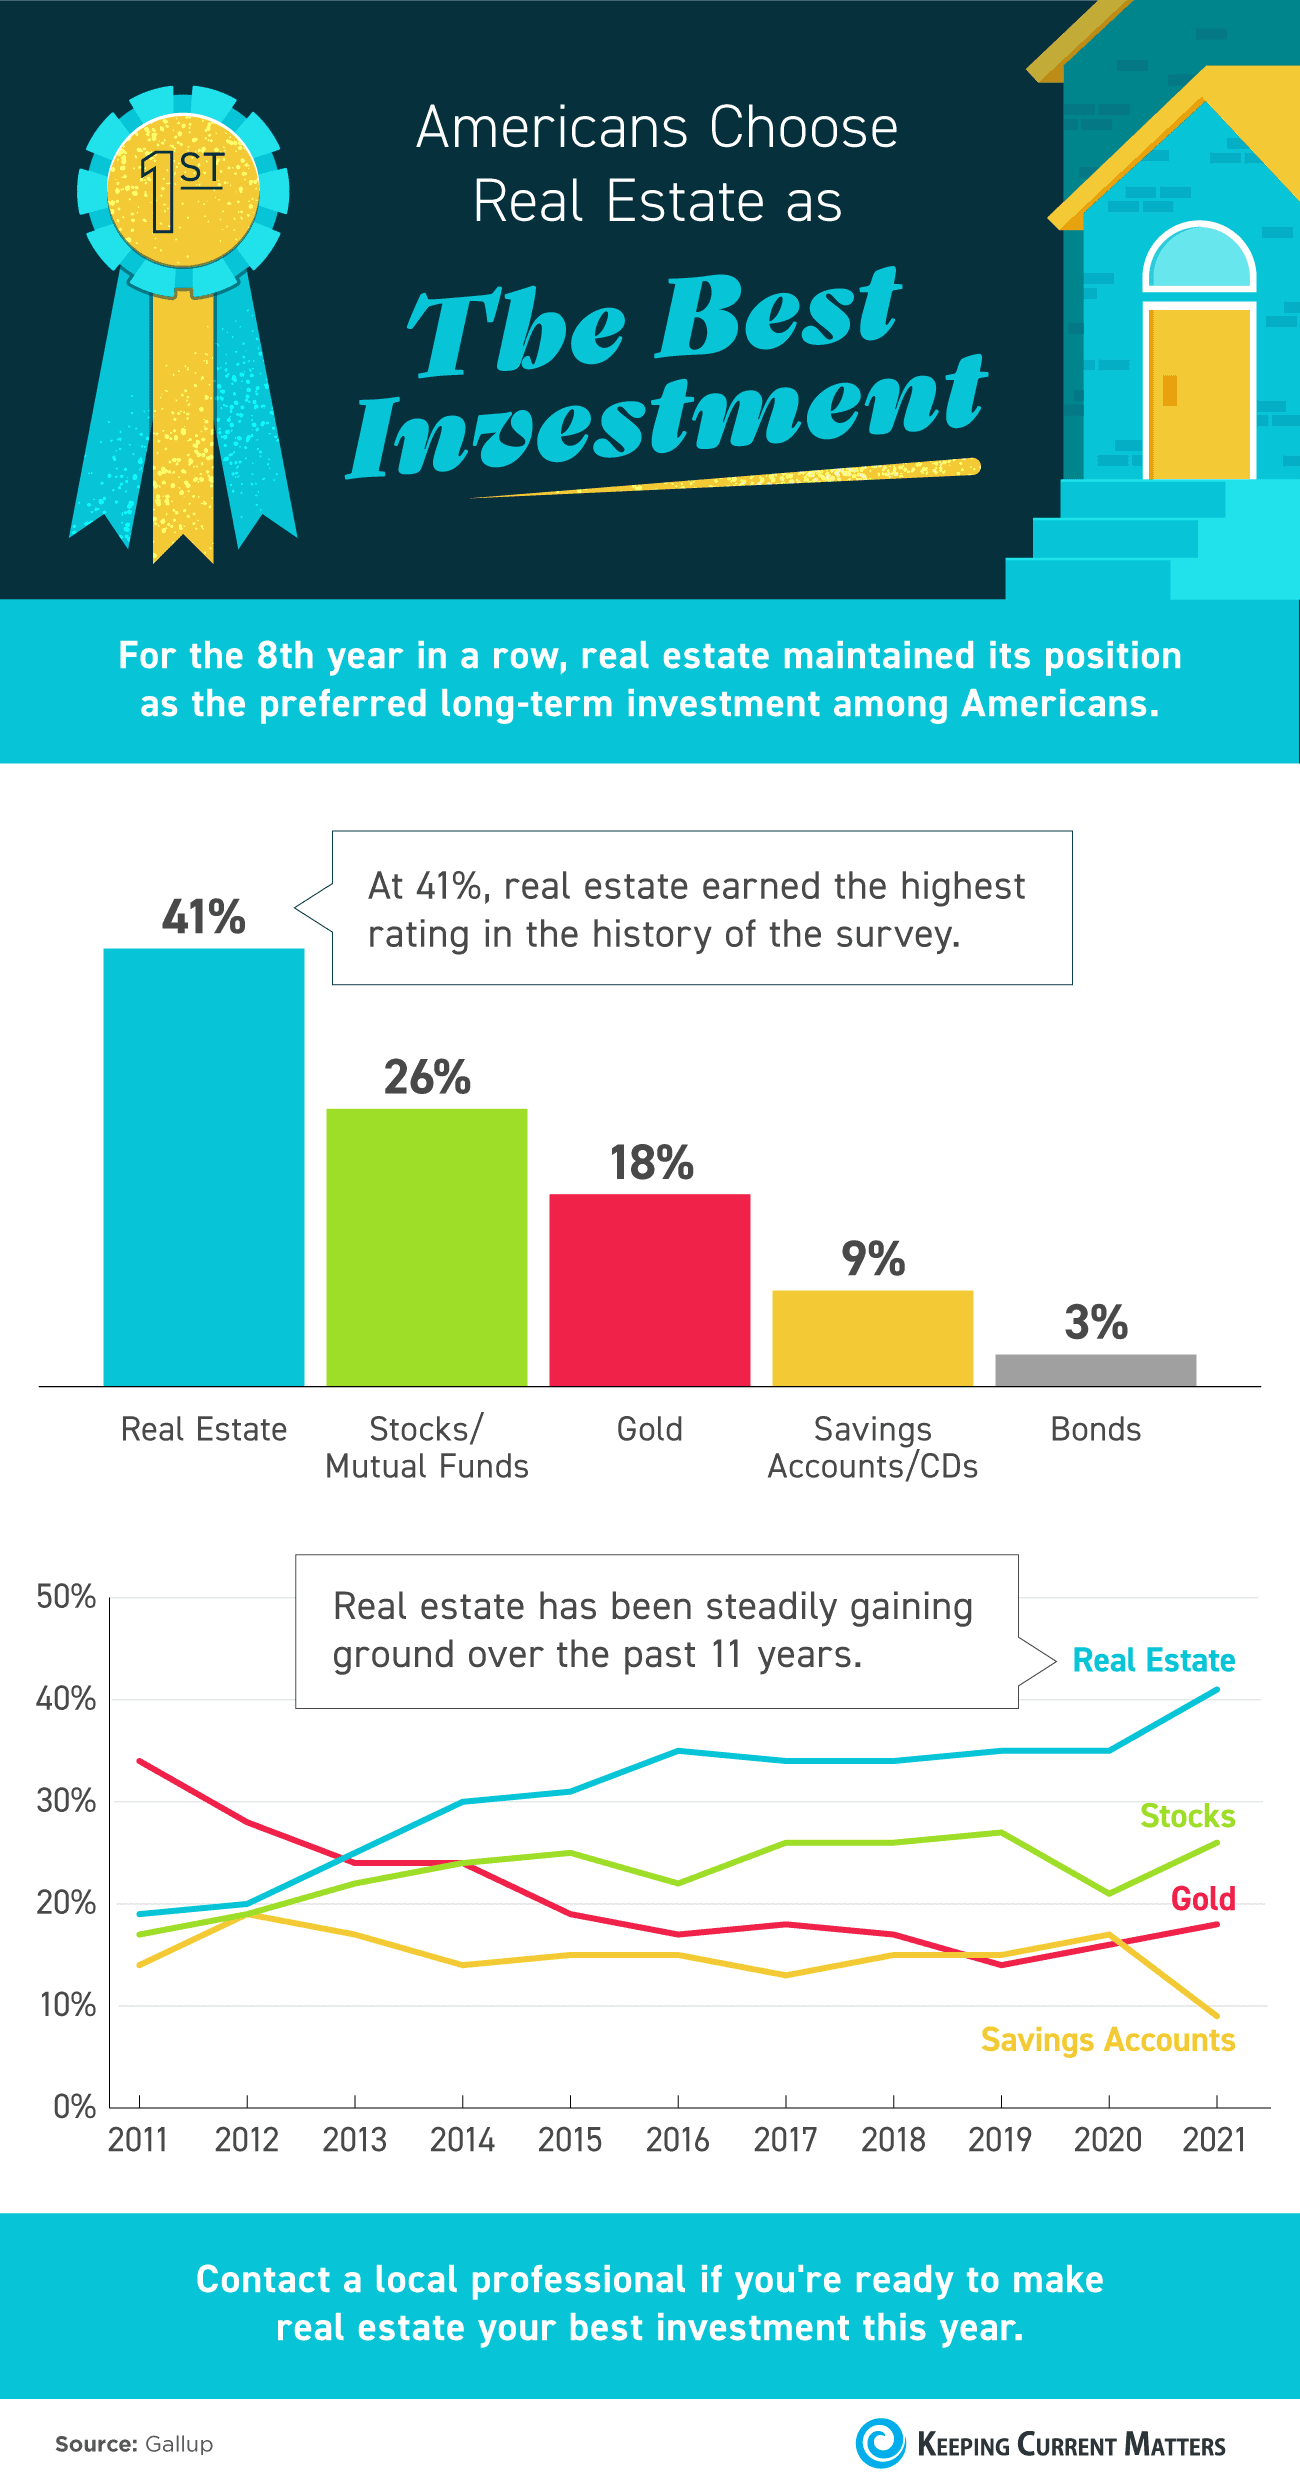 Americans Choose Real Estate as the Best Investment [INFOGRAPHIC] | Keeping Current Matters